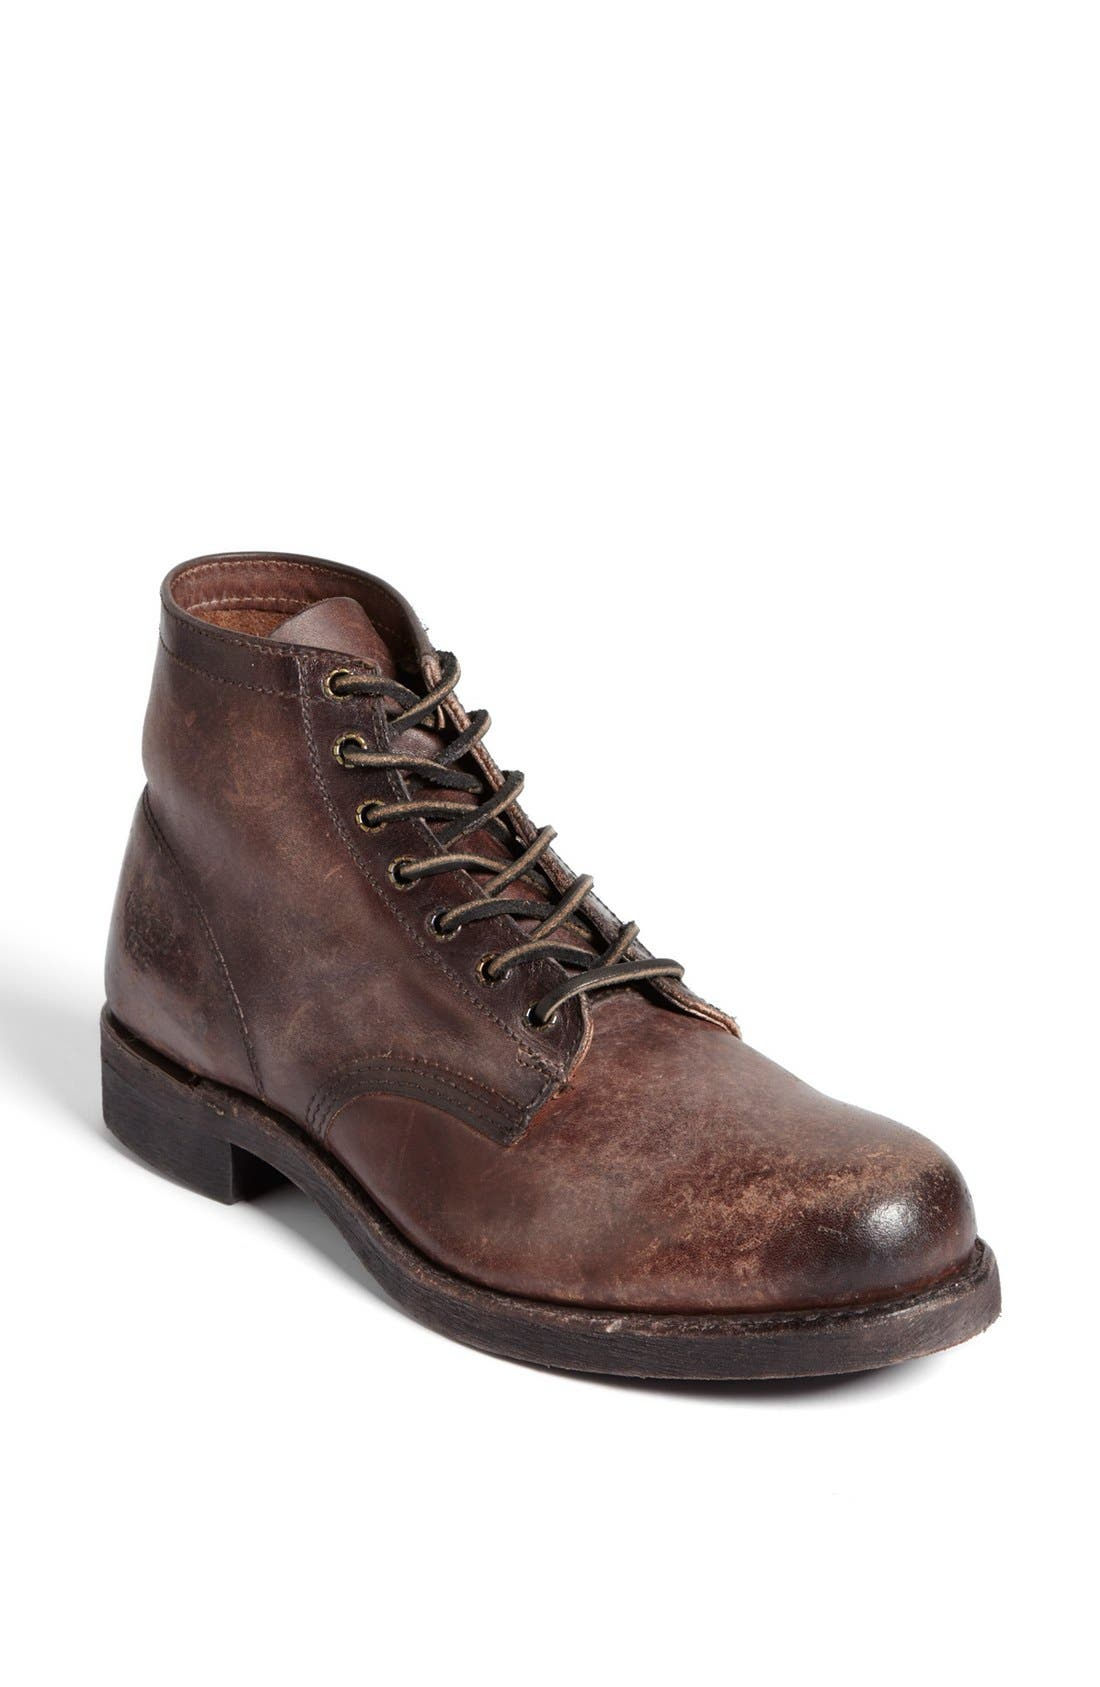 Alternate Image 1 Selected - Frye 'Prison' Leather Boot